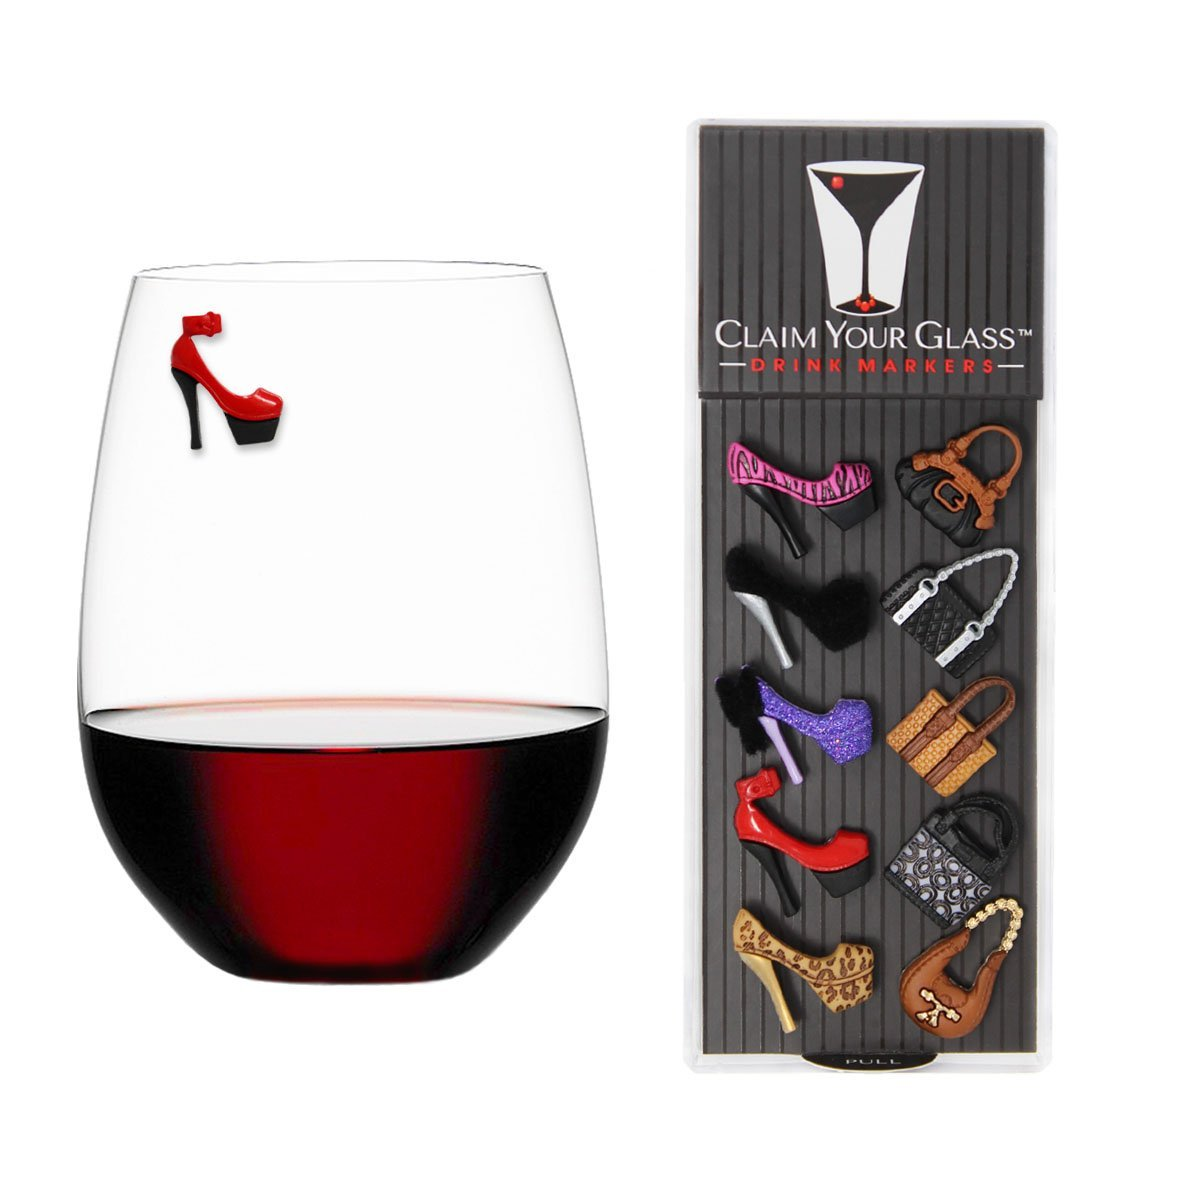 HEELS & PURSES Magnetic Wine Glass Charms (Set of 10) by Claim Your Glass - Premium Drink Markers for Wine, Champagne, Beer, Cocktail Glasses - Includes Storage Case + Spare Magnet